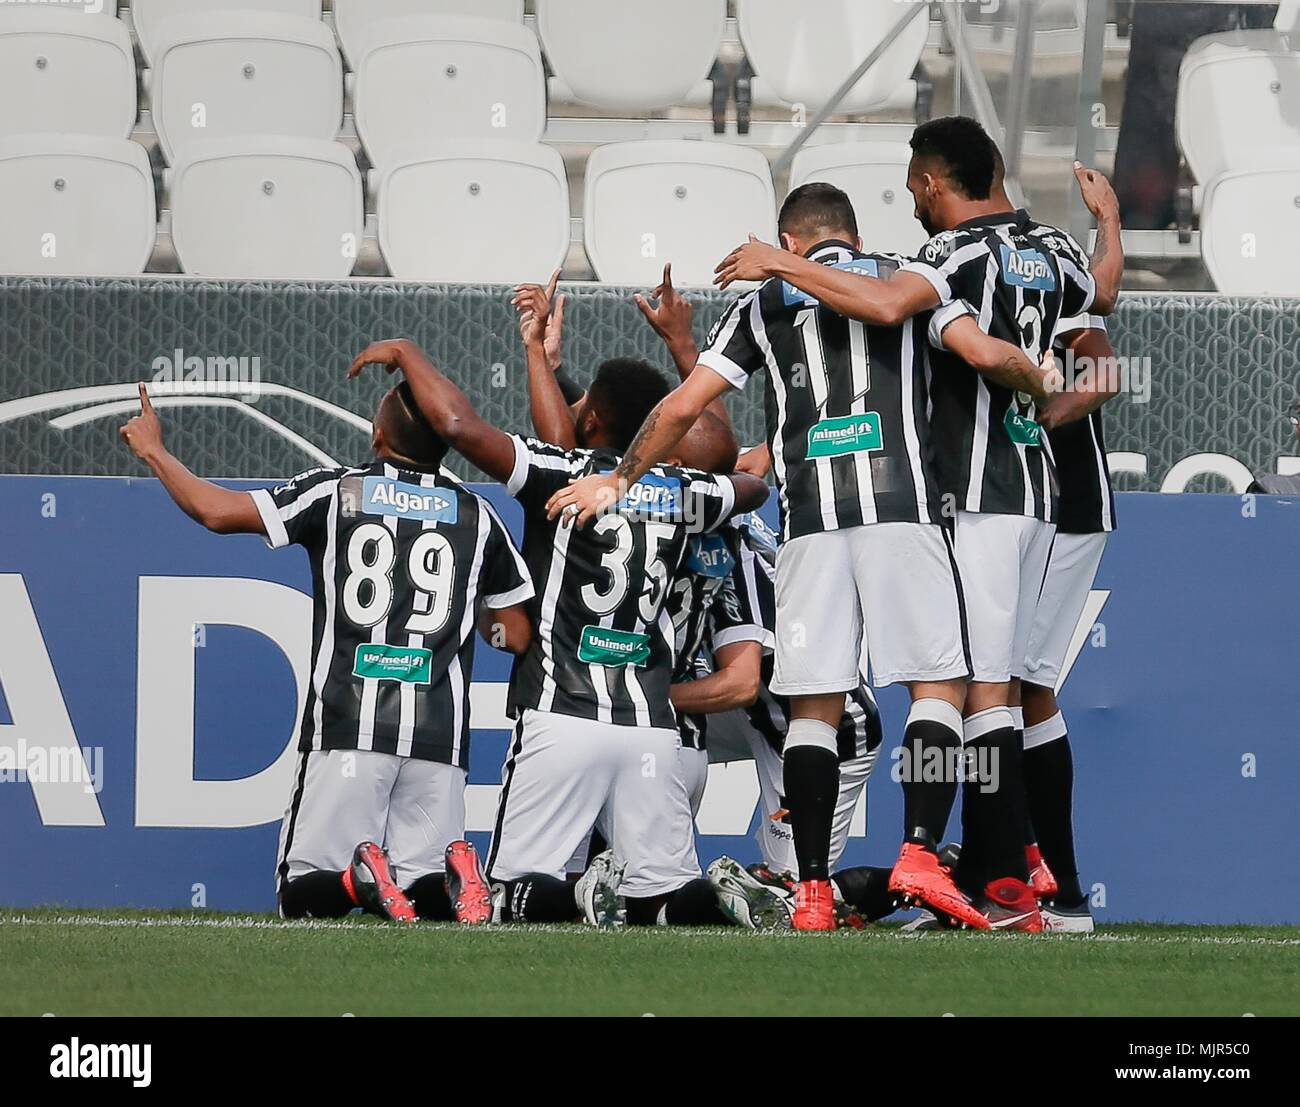 Sao Paulo Sp 06 05 2018 Corinthians X Ceara Wescley Of Ceara Sporting Club Celebrates After Scoring A Goal During Corinthians Vs Ceara Match Valid For The Fourth Round Of The 2018